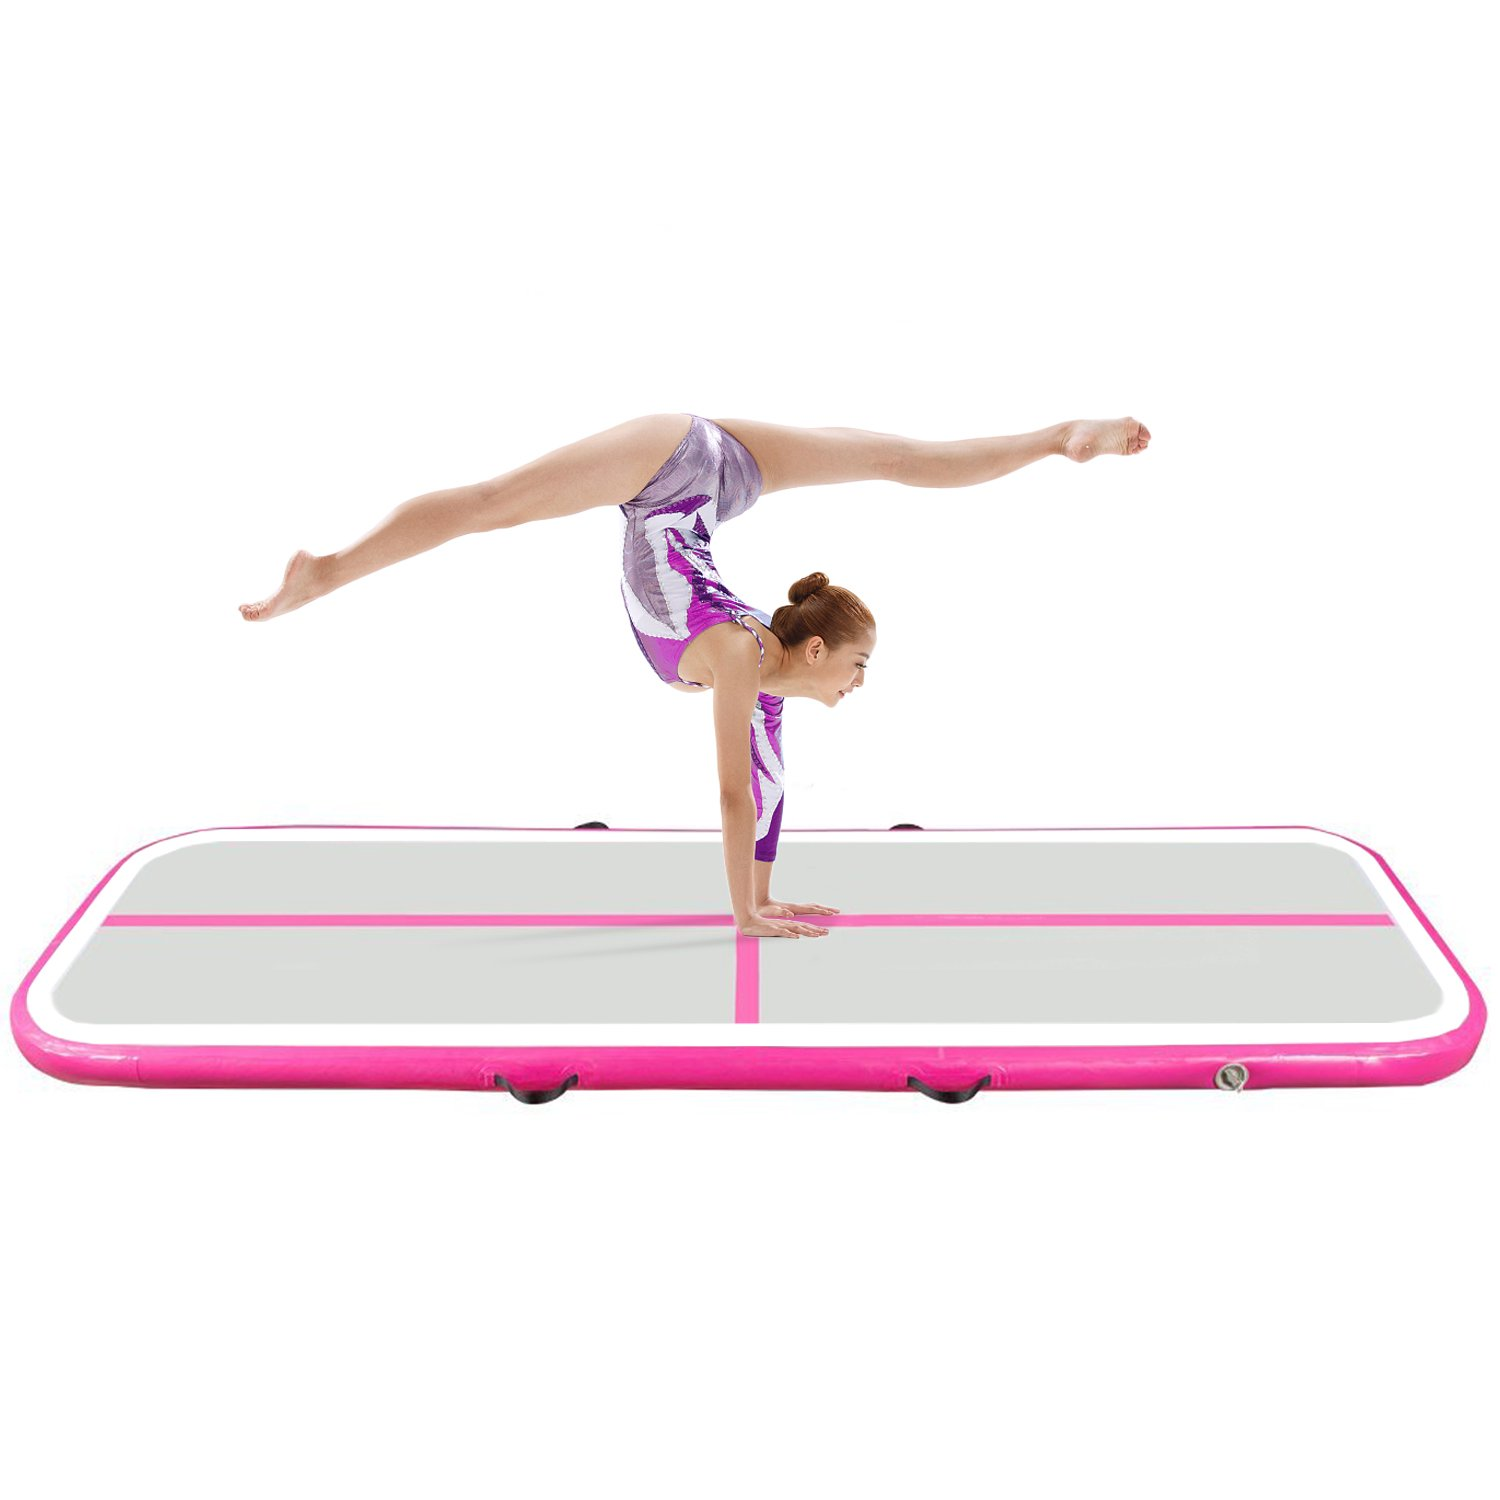 Hans&Alice Inflatable Gymnastic Mat Airtrack Tumbling Mat for Indoor/Outdoor Use (2mx1mx0.1m)